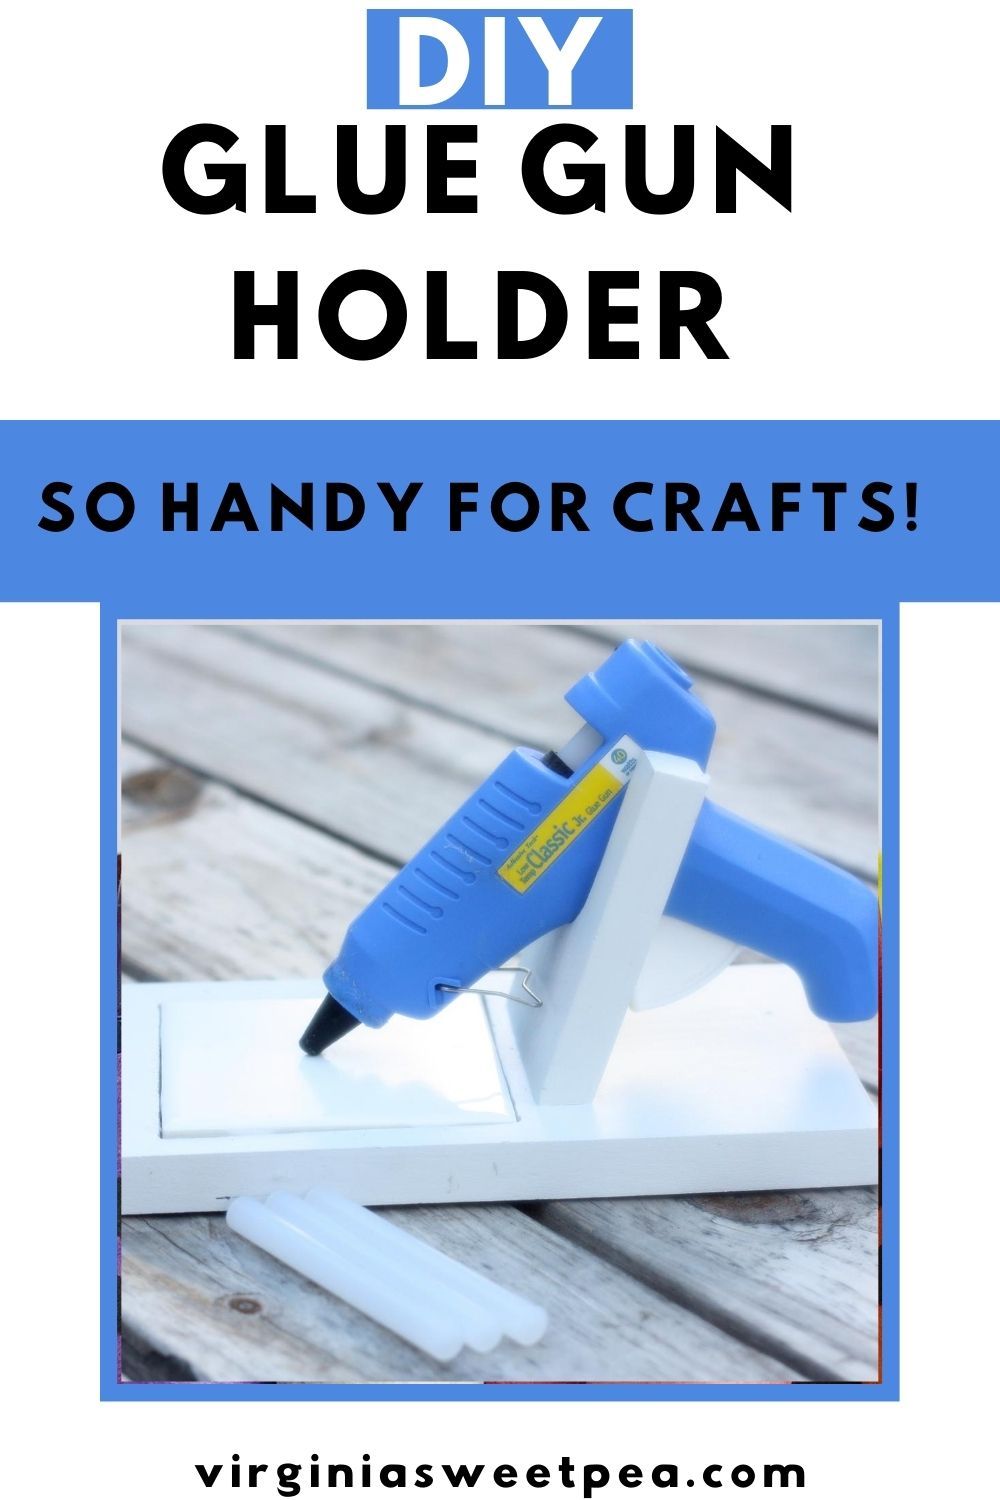 DIY Glue Gun Holder - Learn how to make a glue gun holder. This woodworking project isn't difficult to make and is super handy for any crafter to own. Not only does this hold a glue gun, but it also catches pesky glue drips. #gluegunholder via @spaula